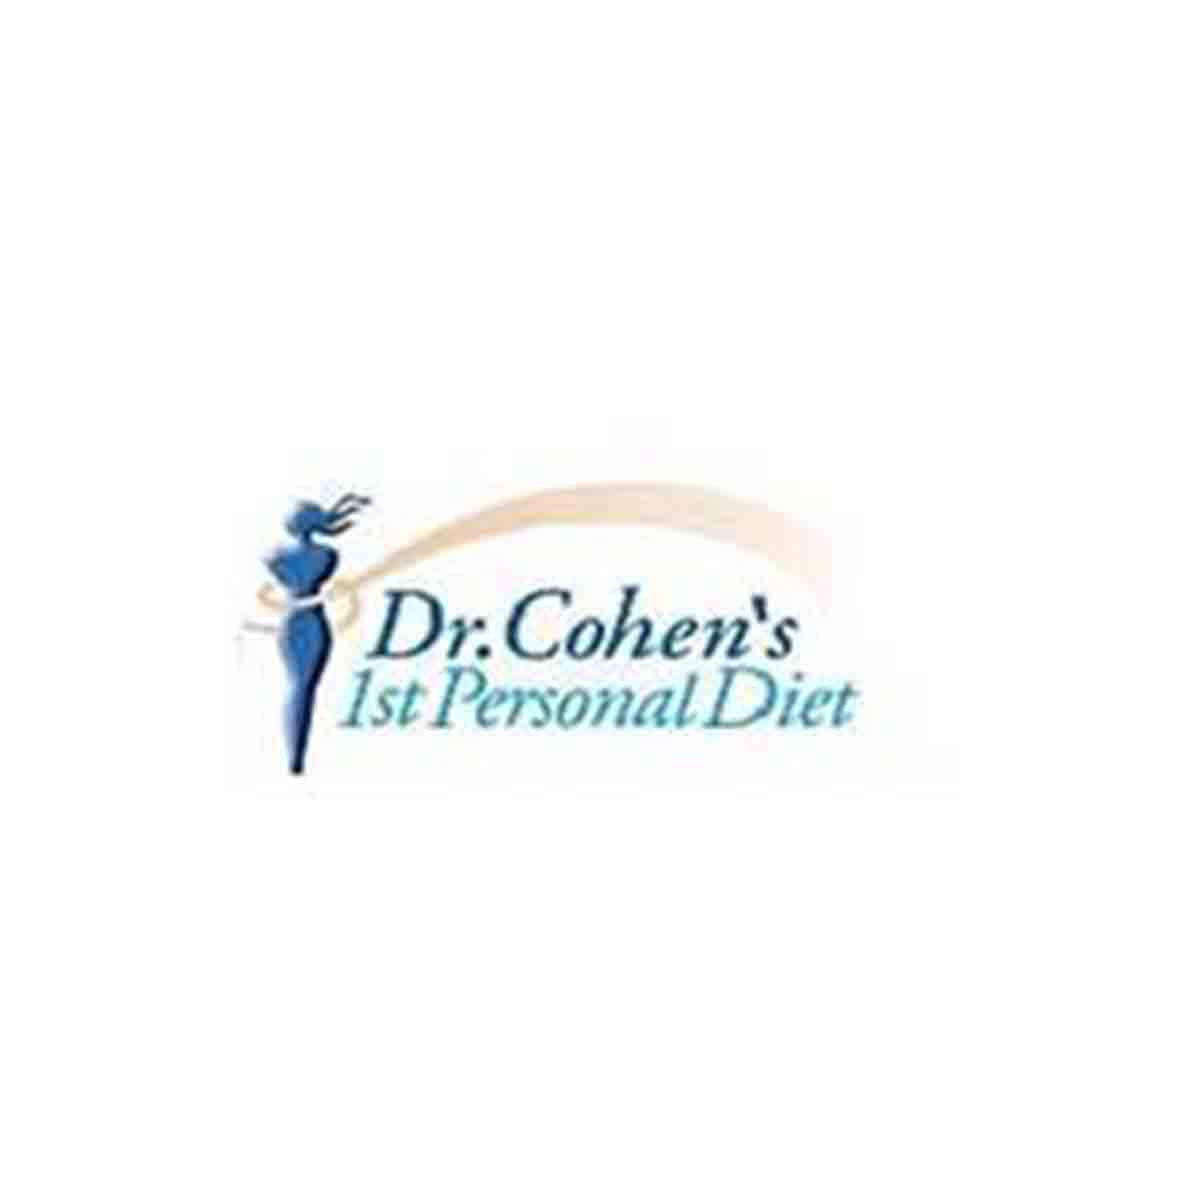 Dr. Cohen's First Personal Diet